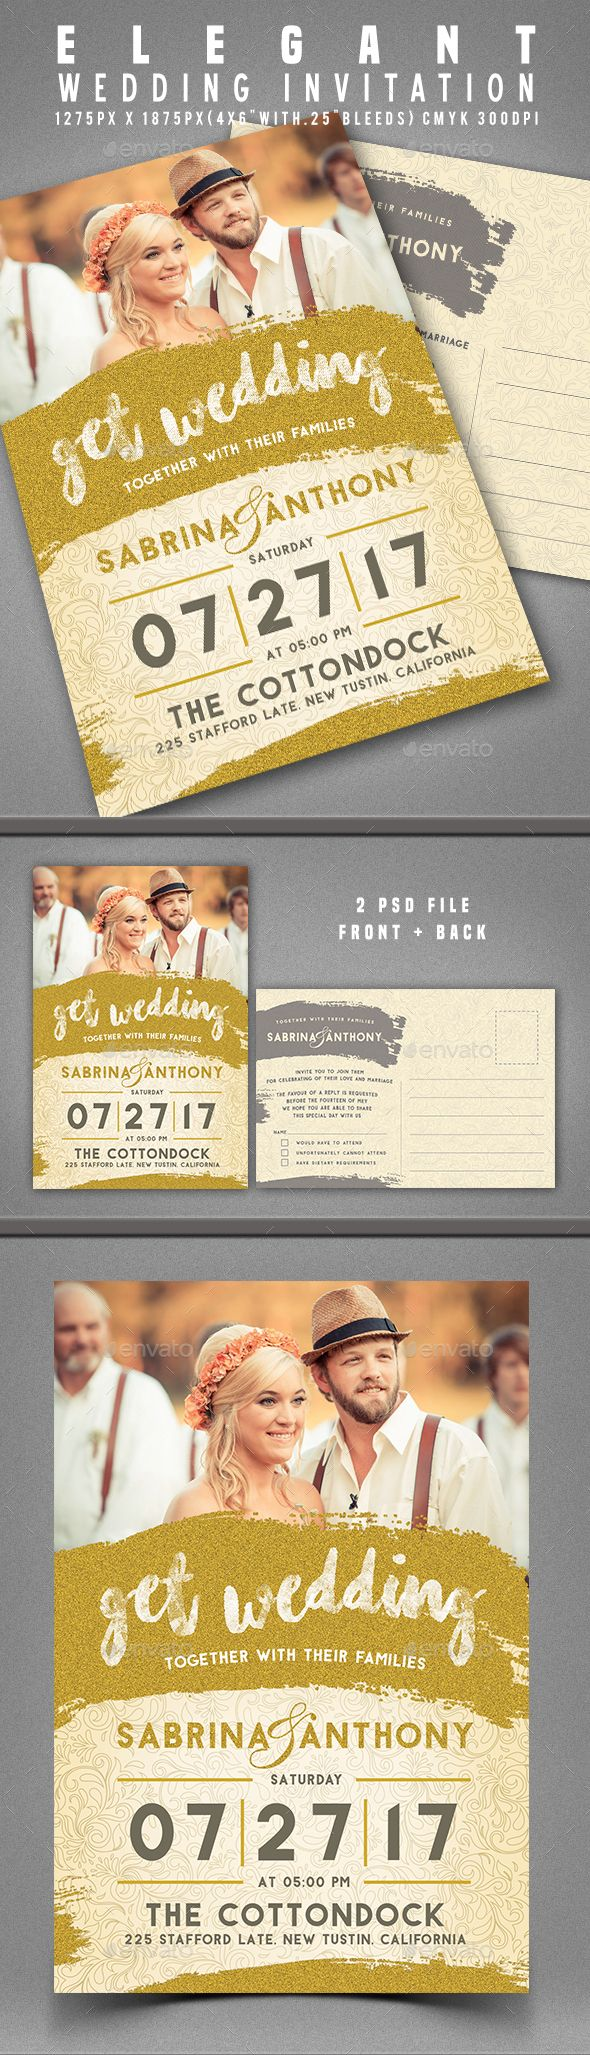 Wedding Invitation Template PSD. Download here: https://graphicriver.net/item/wedding-invitation/17424971?ref=ksioks